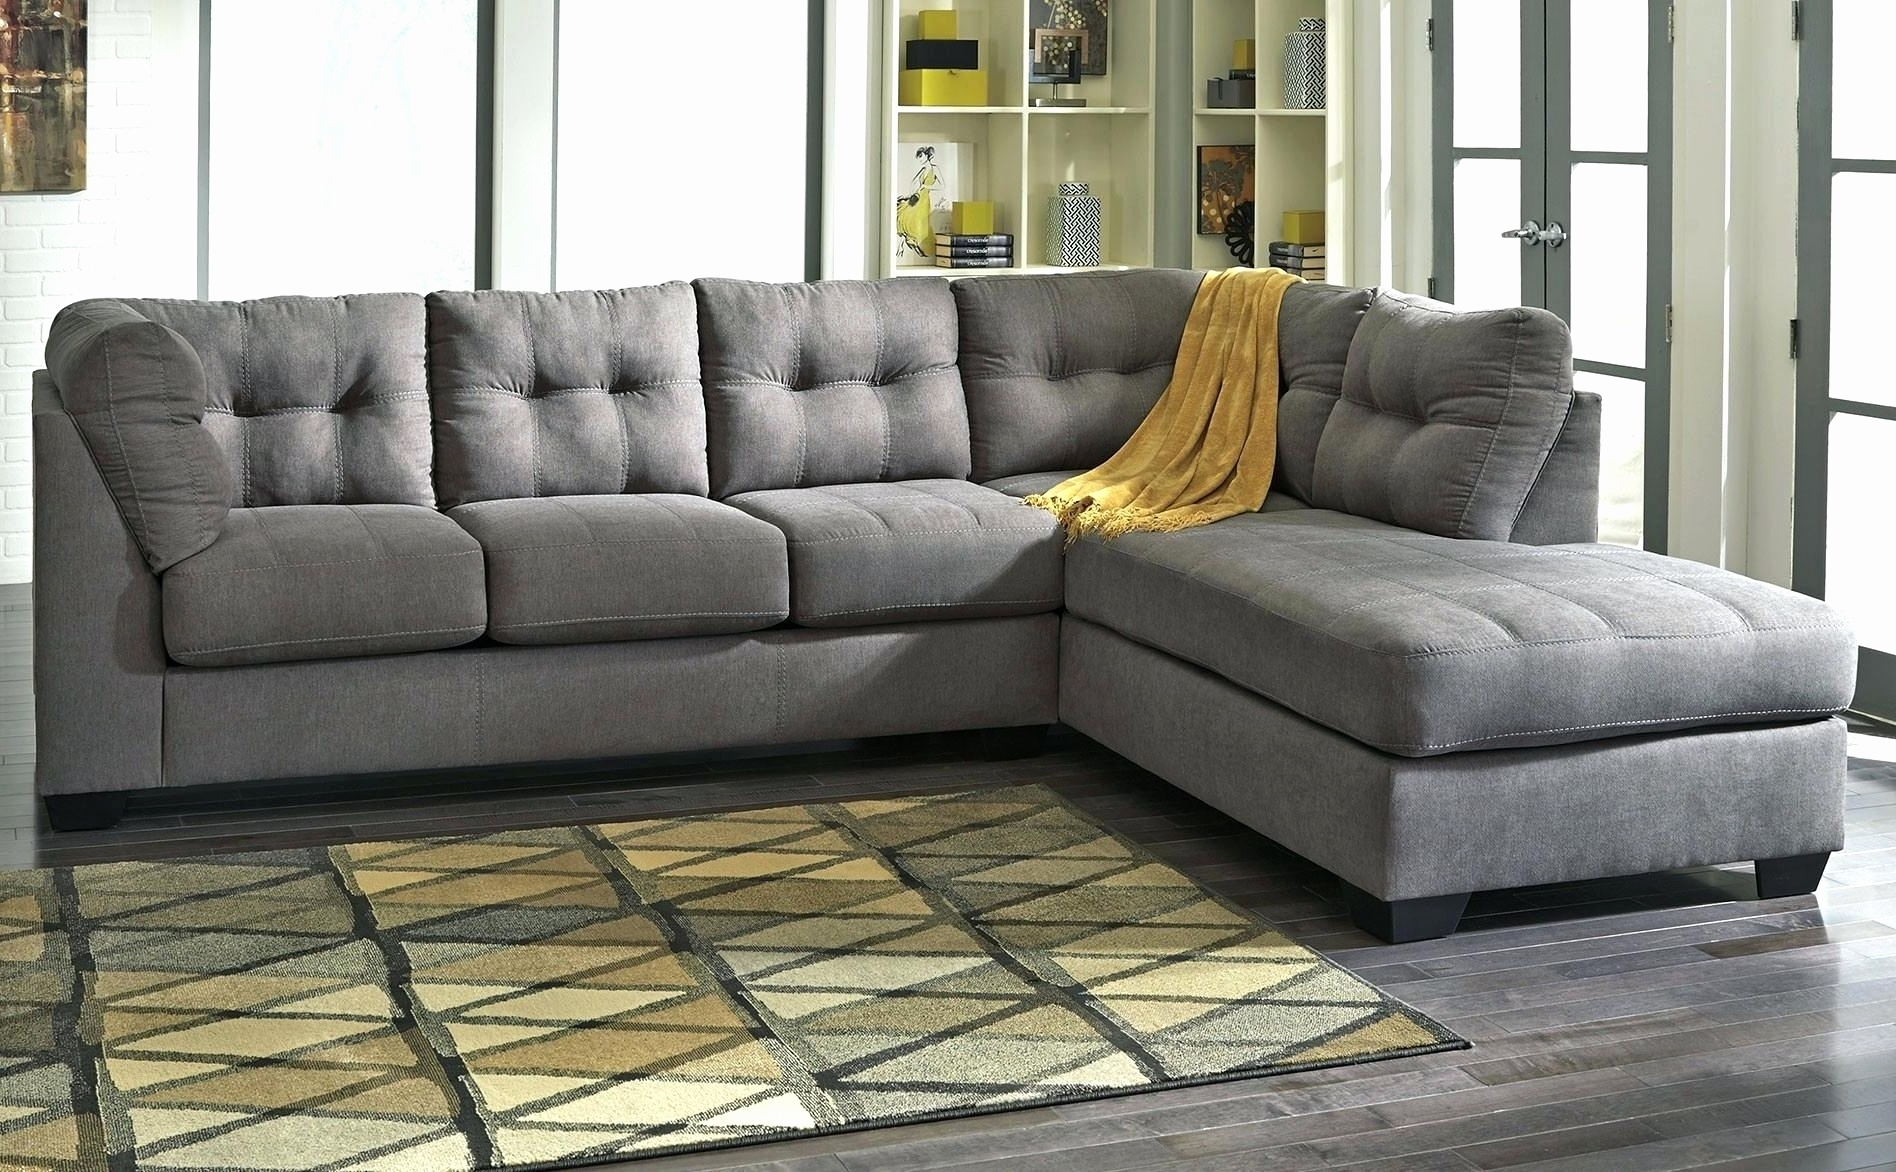 Fresh Grey Velvet Sectional Sofa 2018 – Couches And Sofas Ideas Within Famous Velvet Sectional Sofas With Chaise (View 8 of 15)